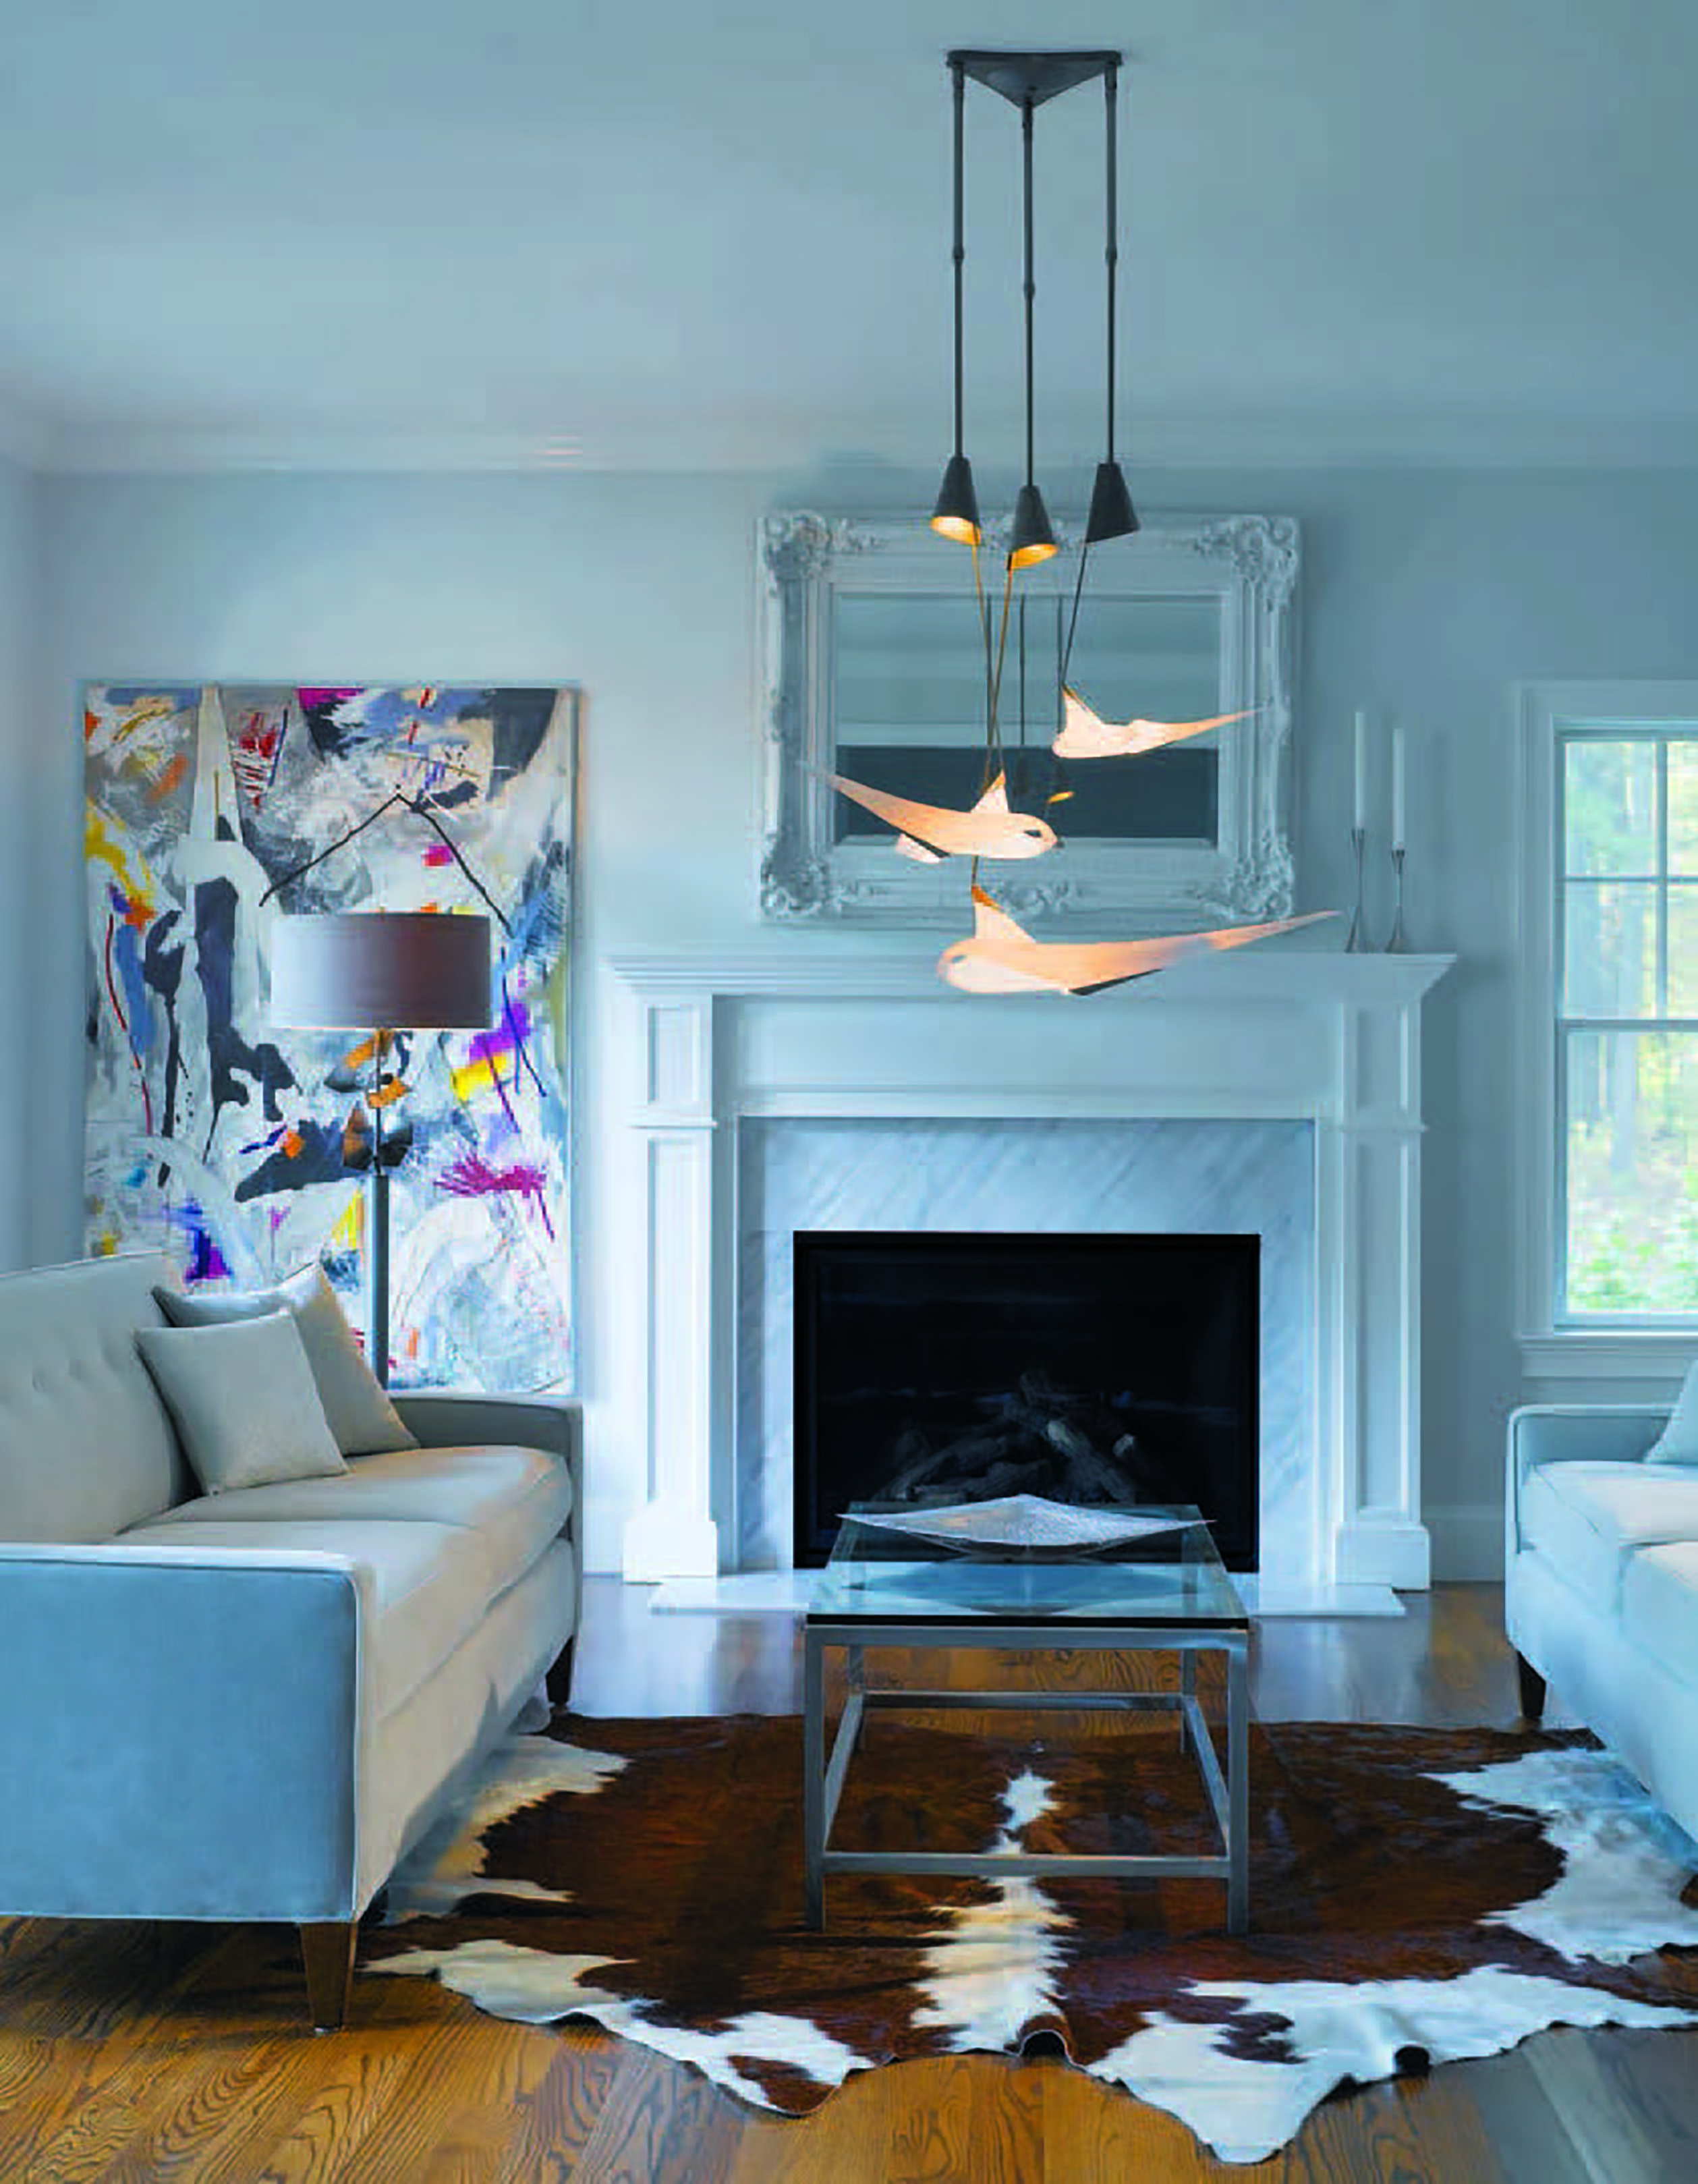 Hubbardton Forge Icarus Pendant Fogg Lighting